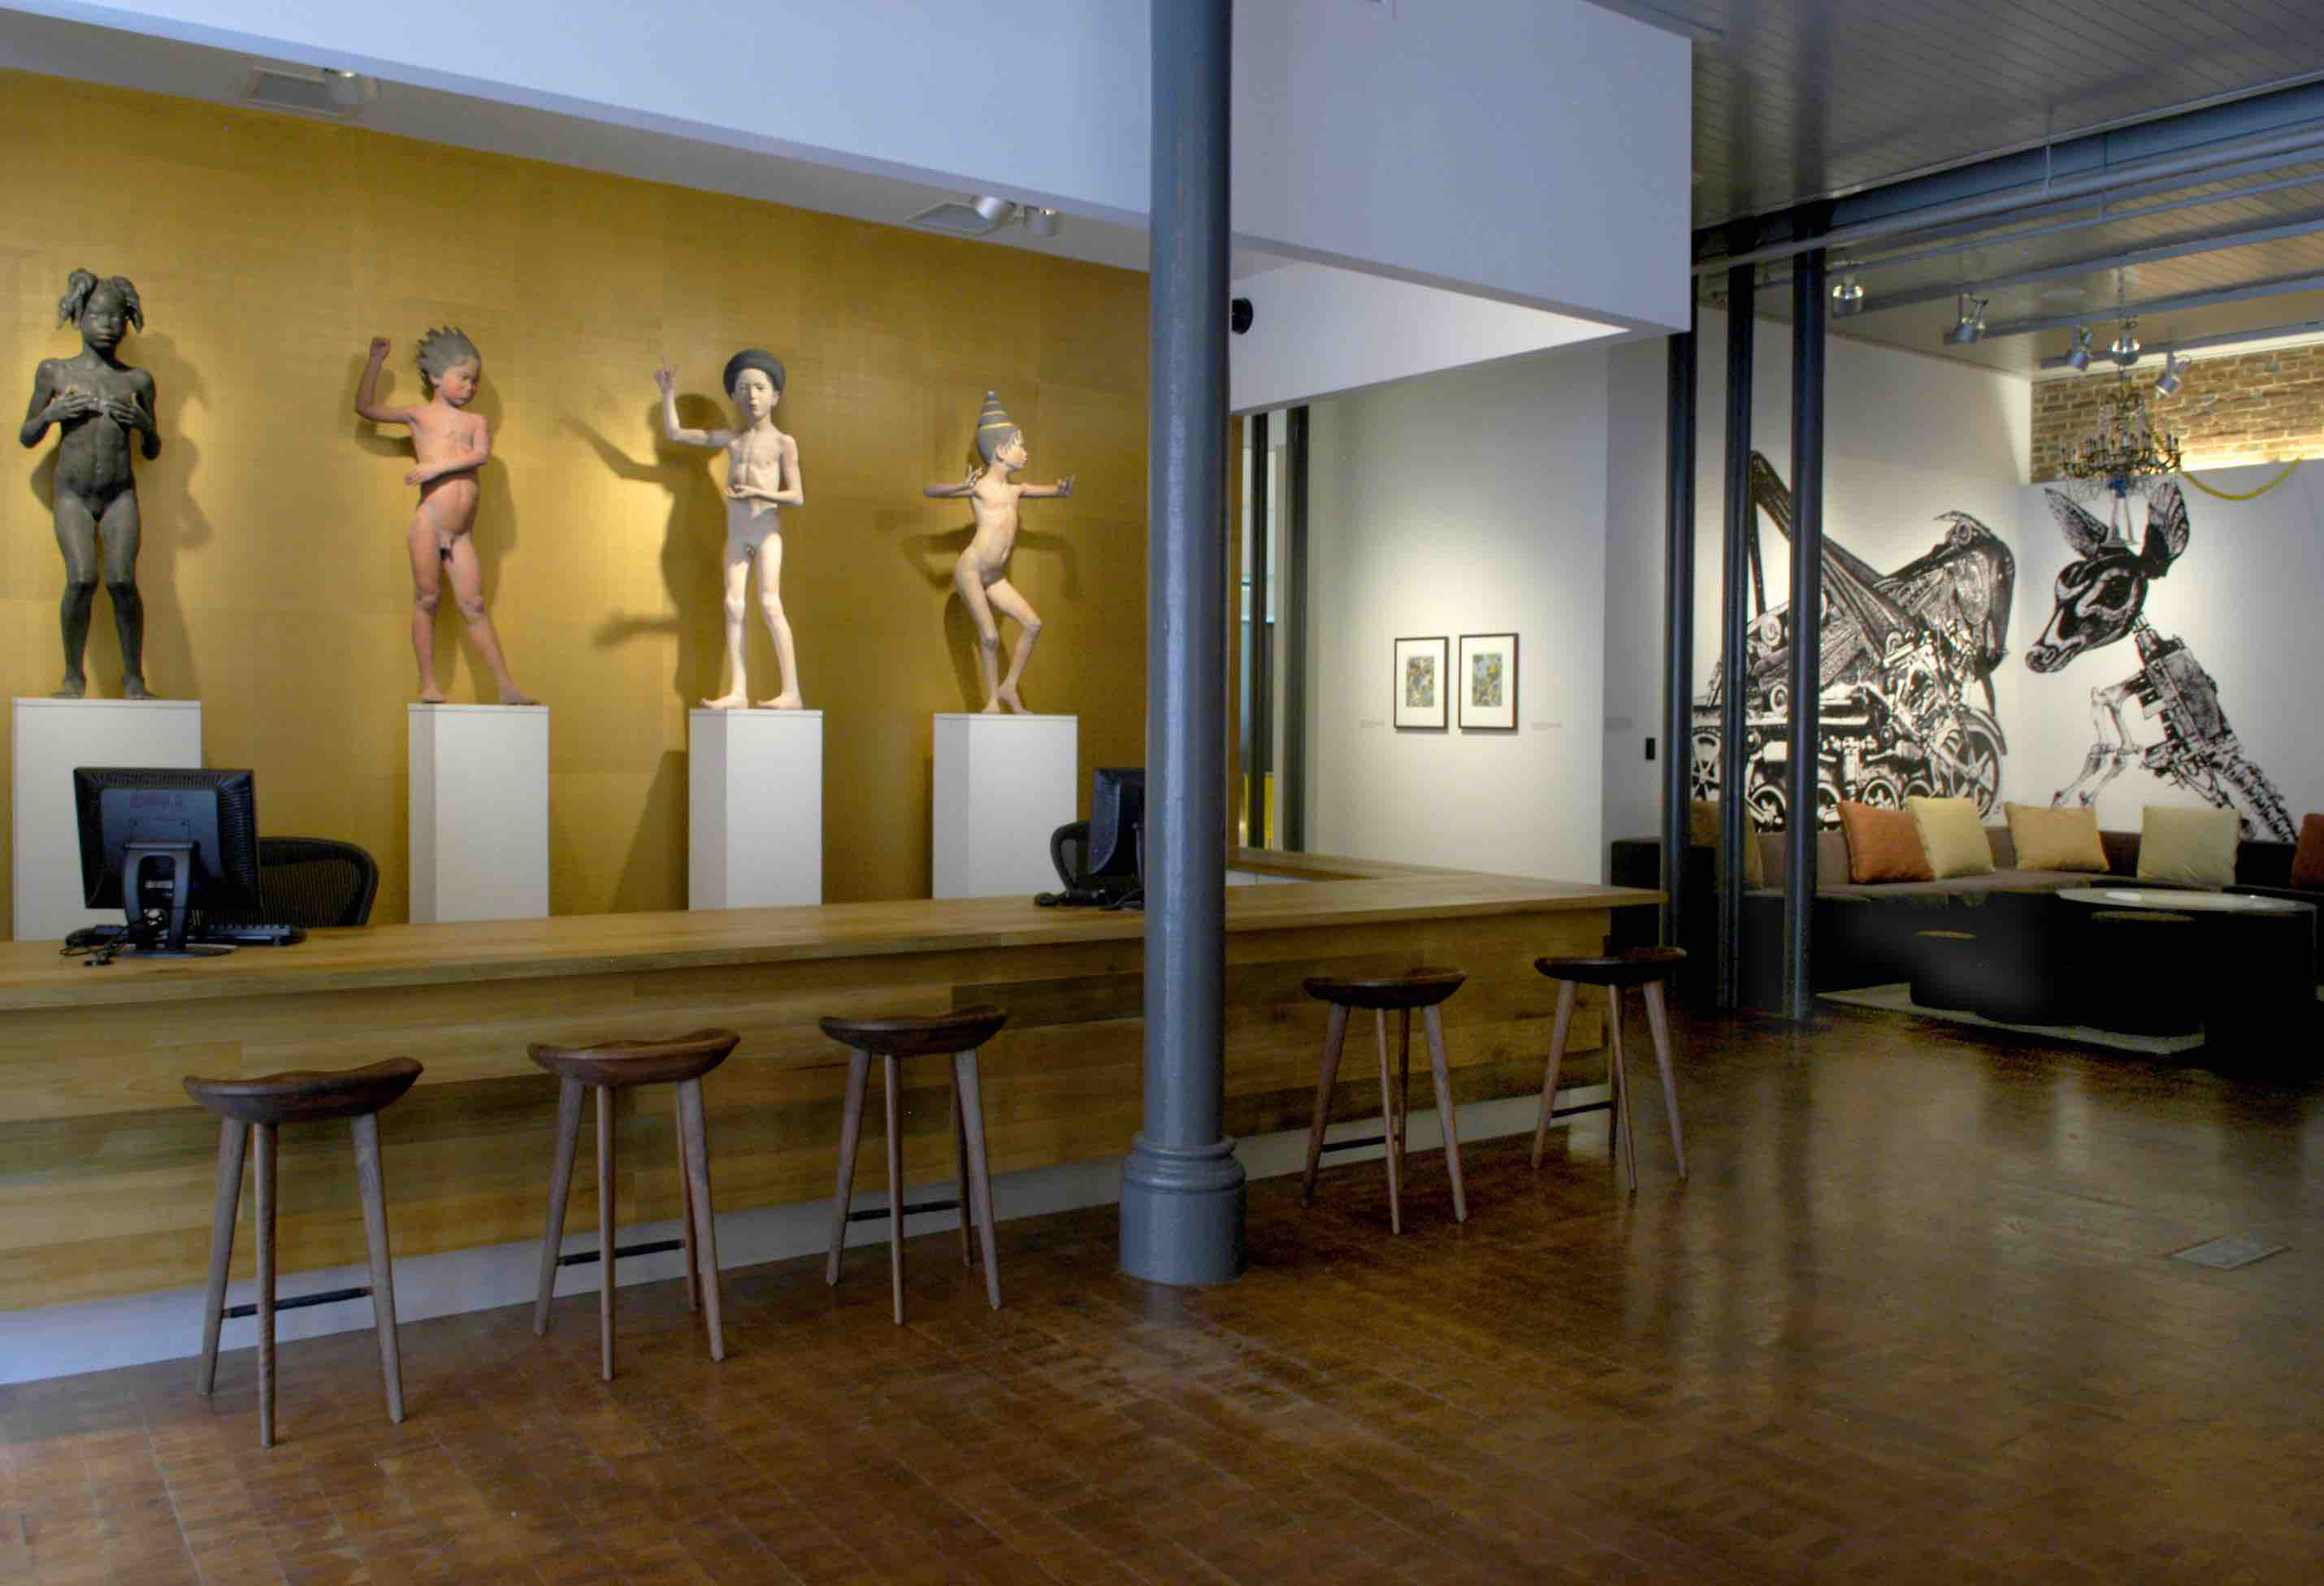 Conceived by Steve Wilson and Laura Lee Brown as part of an urban renewal project to protect Kentucky farmland from Louisville's suburban sprawl, 21c Museum Hotel Louisville - is part contemporary art museum, part boutique hotel.